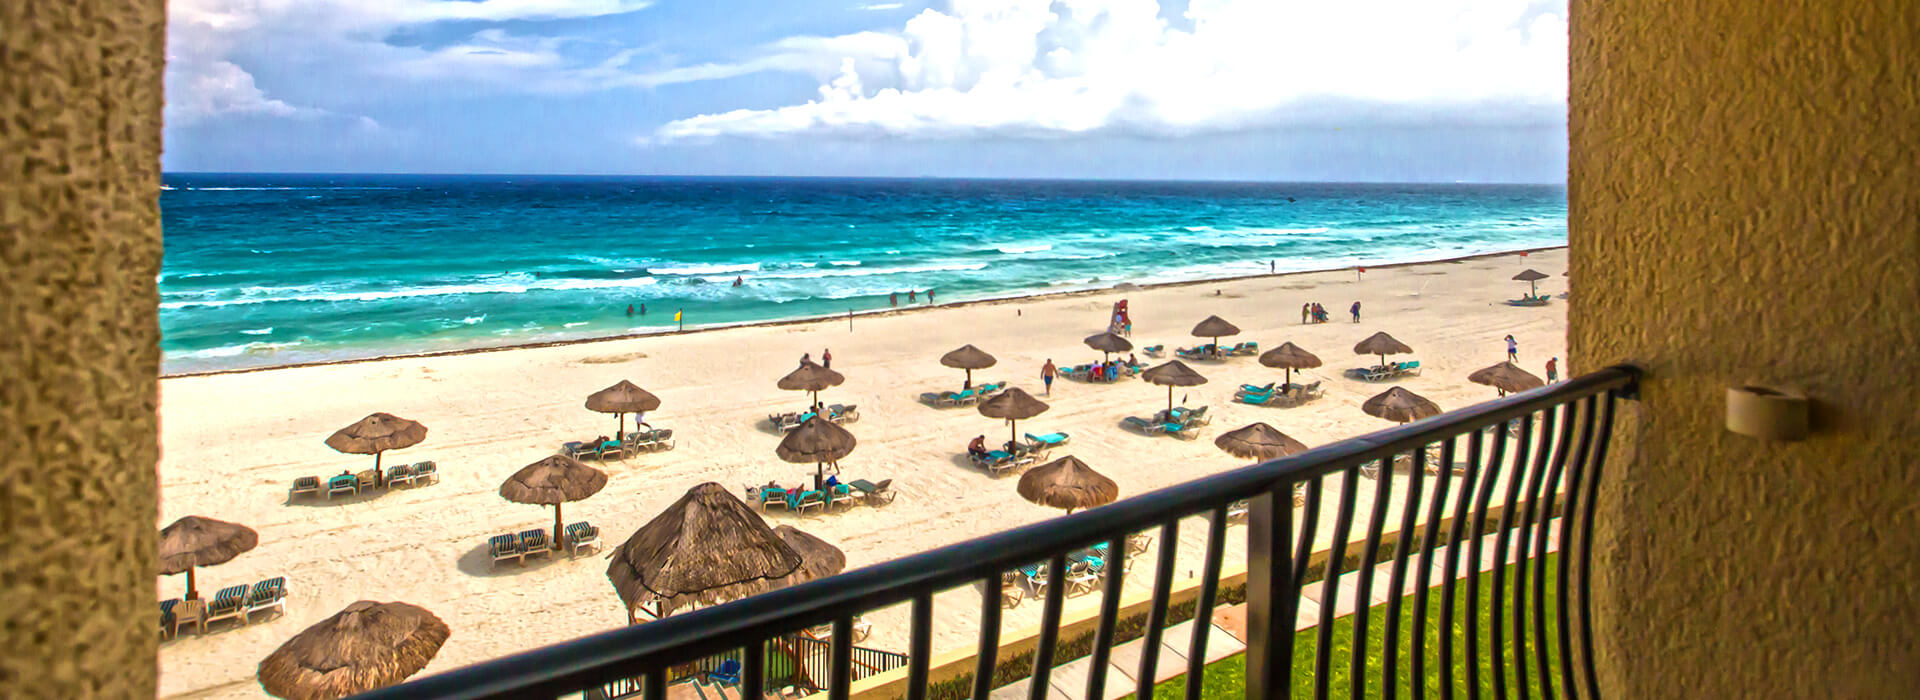 Beachfront Junior suite with private balcony to the dazzling Caribbean beach landscapes